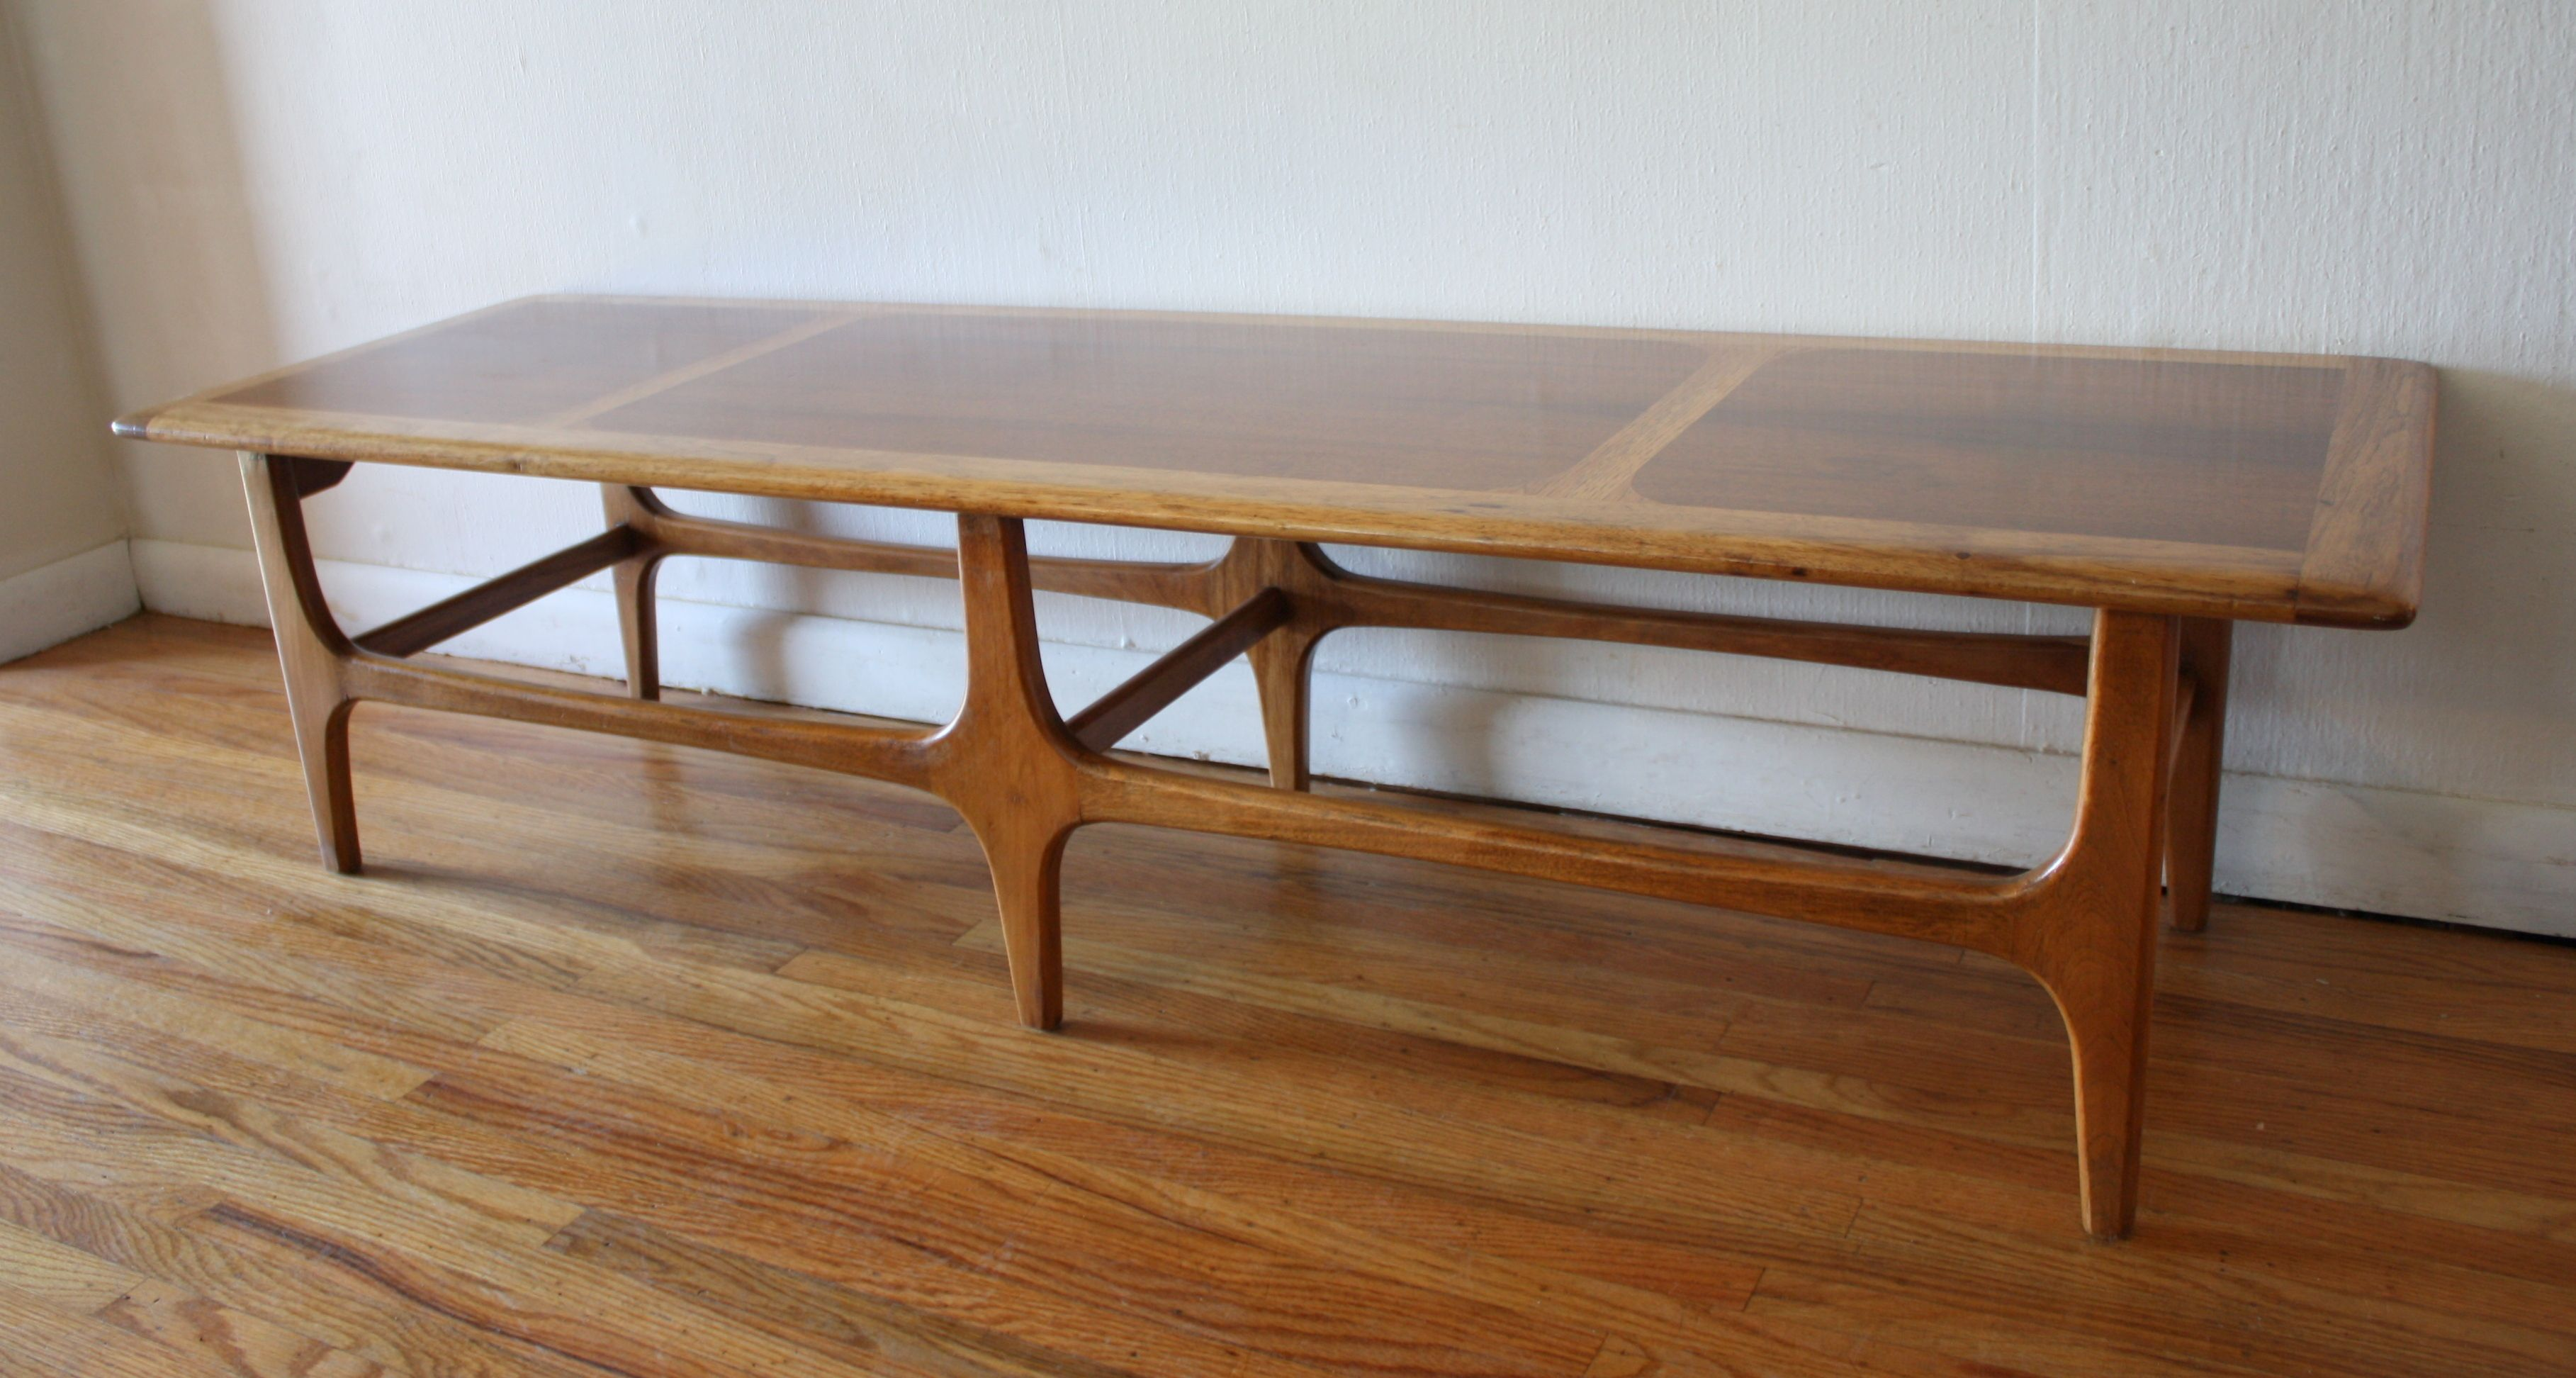 Mid Century Modern Teak Bookshelf From The Dixie S Scova Collection Picked Vintage Pinterest And